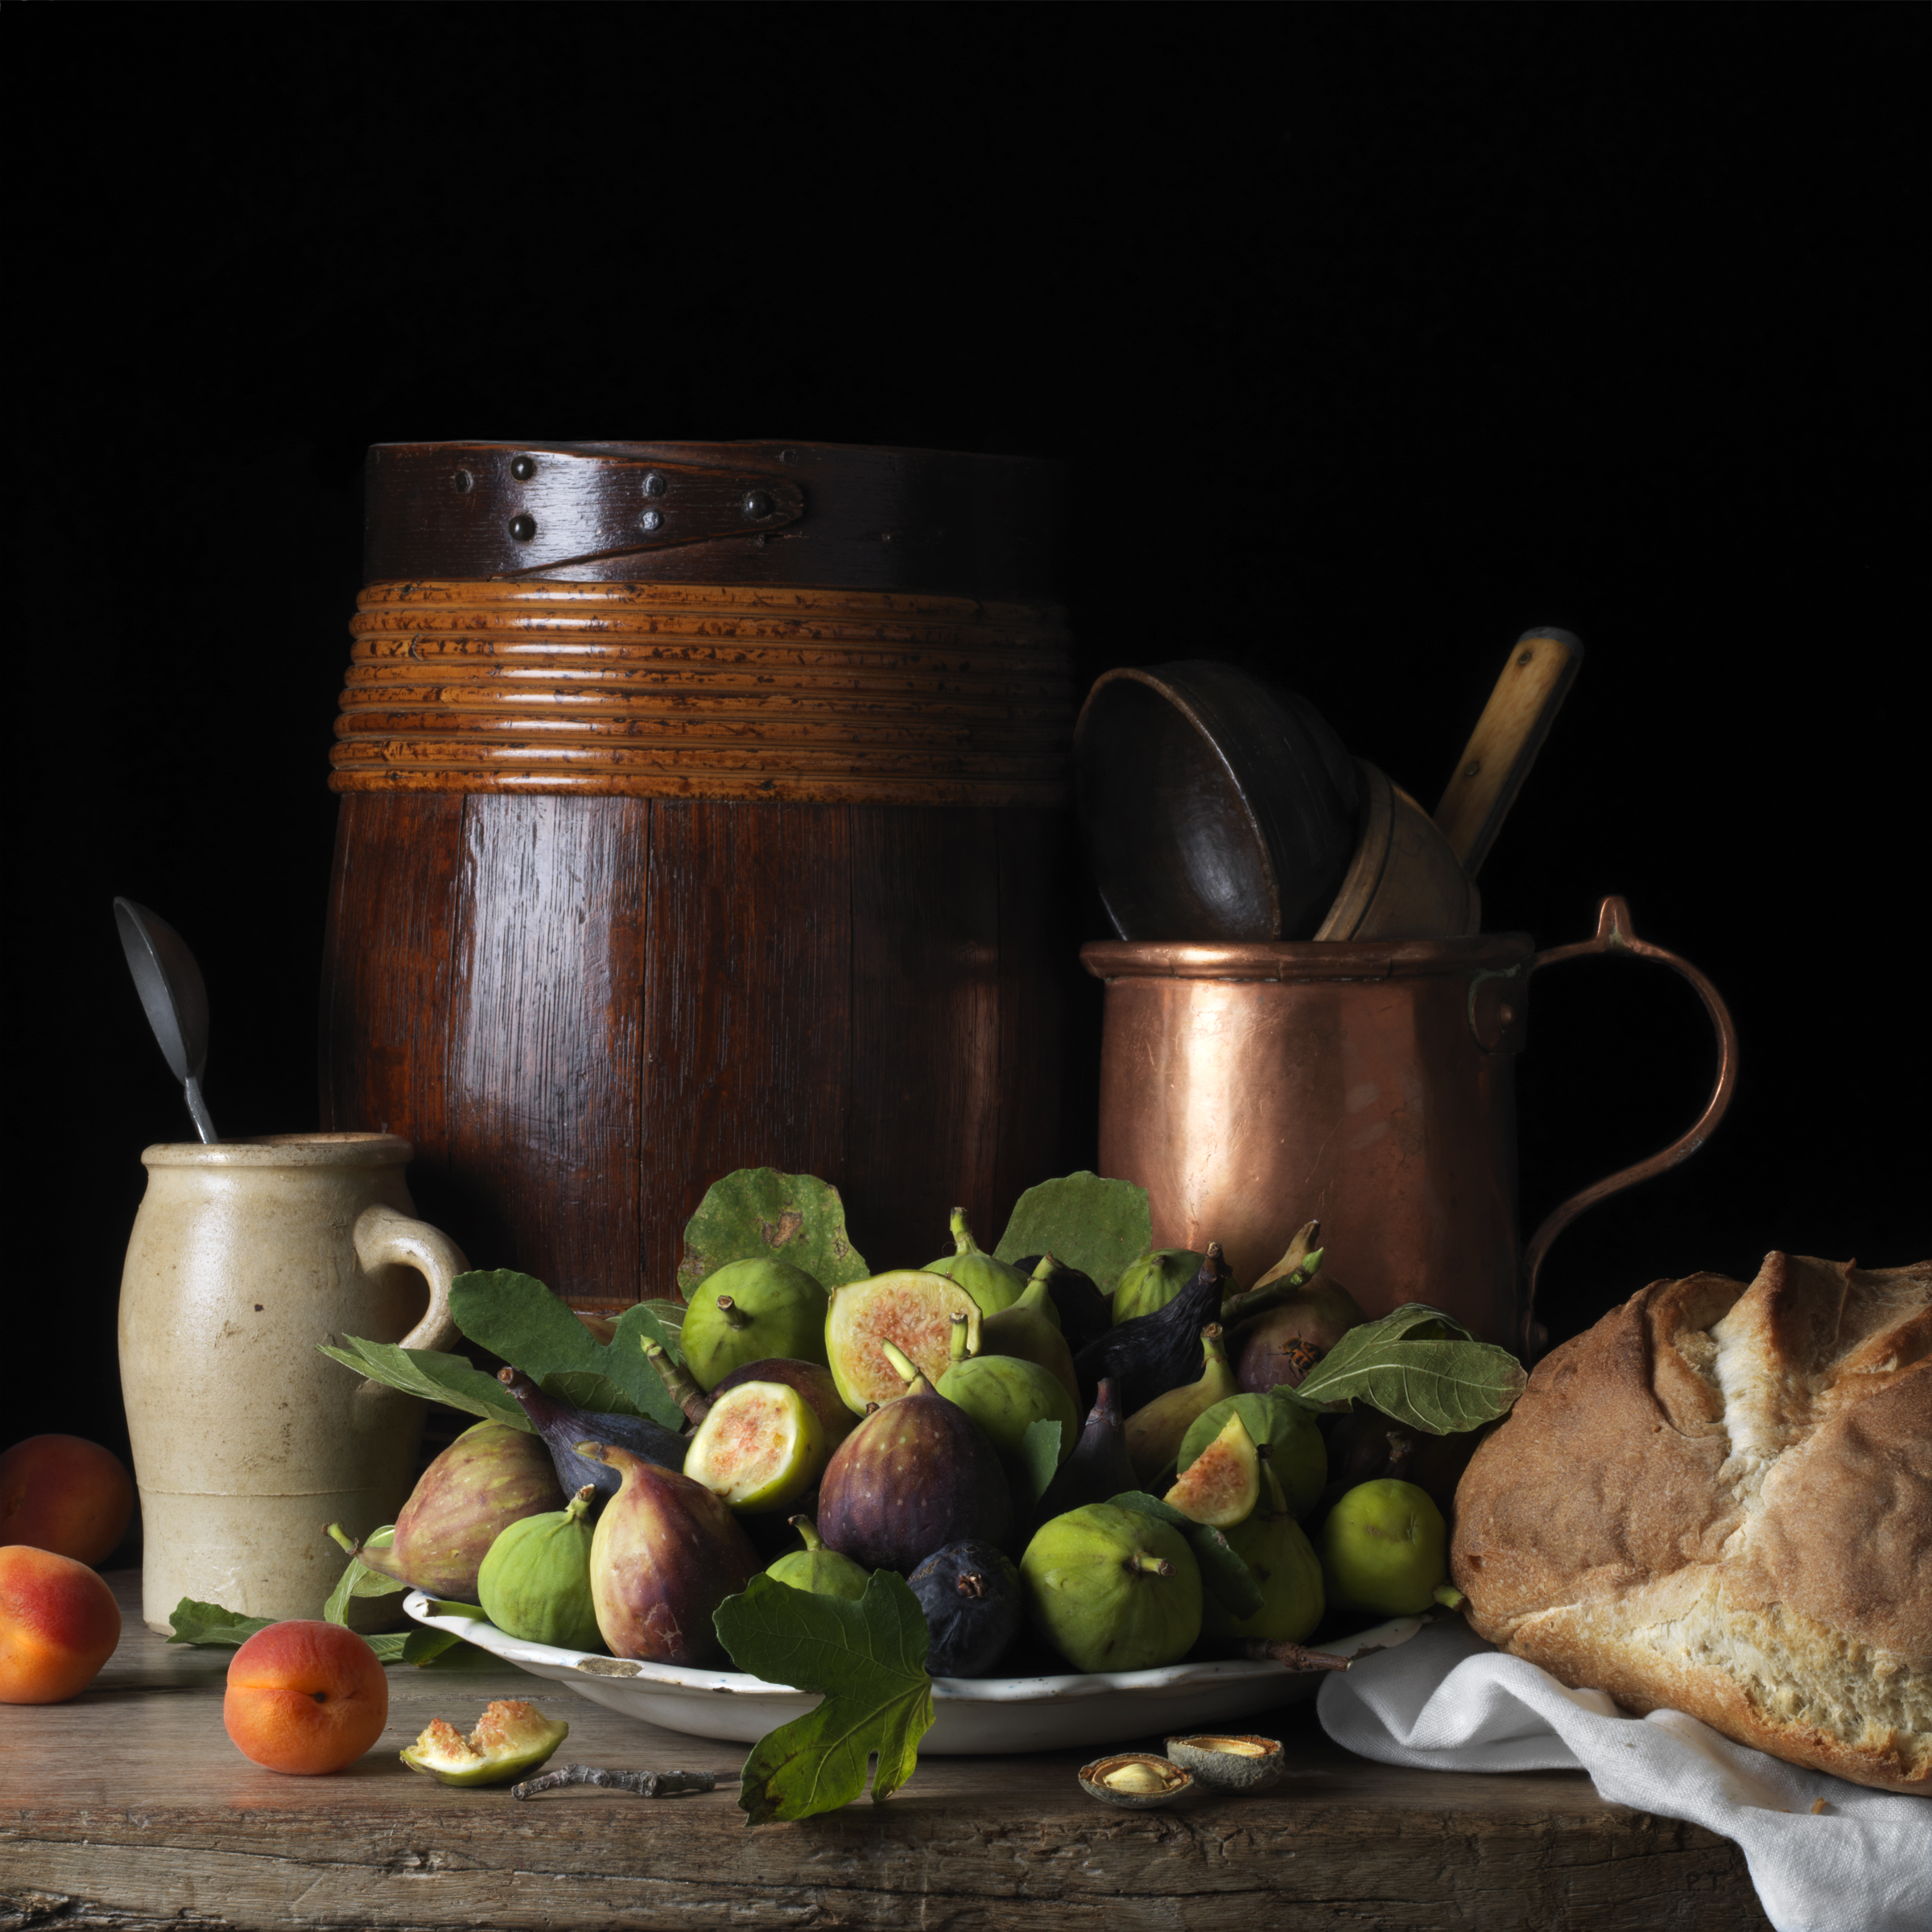 Figs and Bread, After L.M. 2014